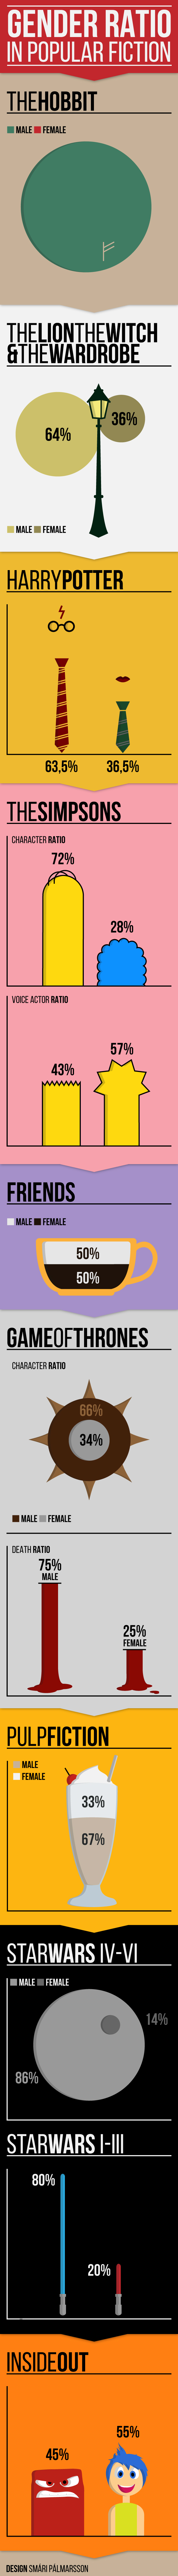 Gender ratio in popular fiction infographic